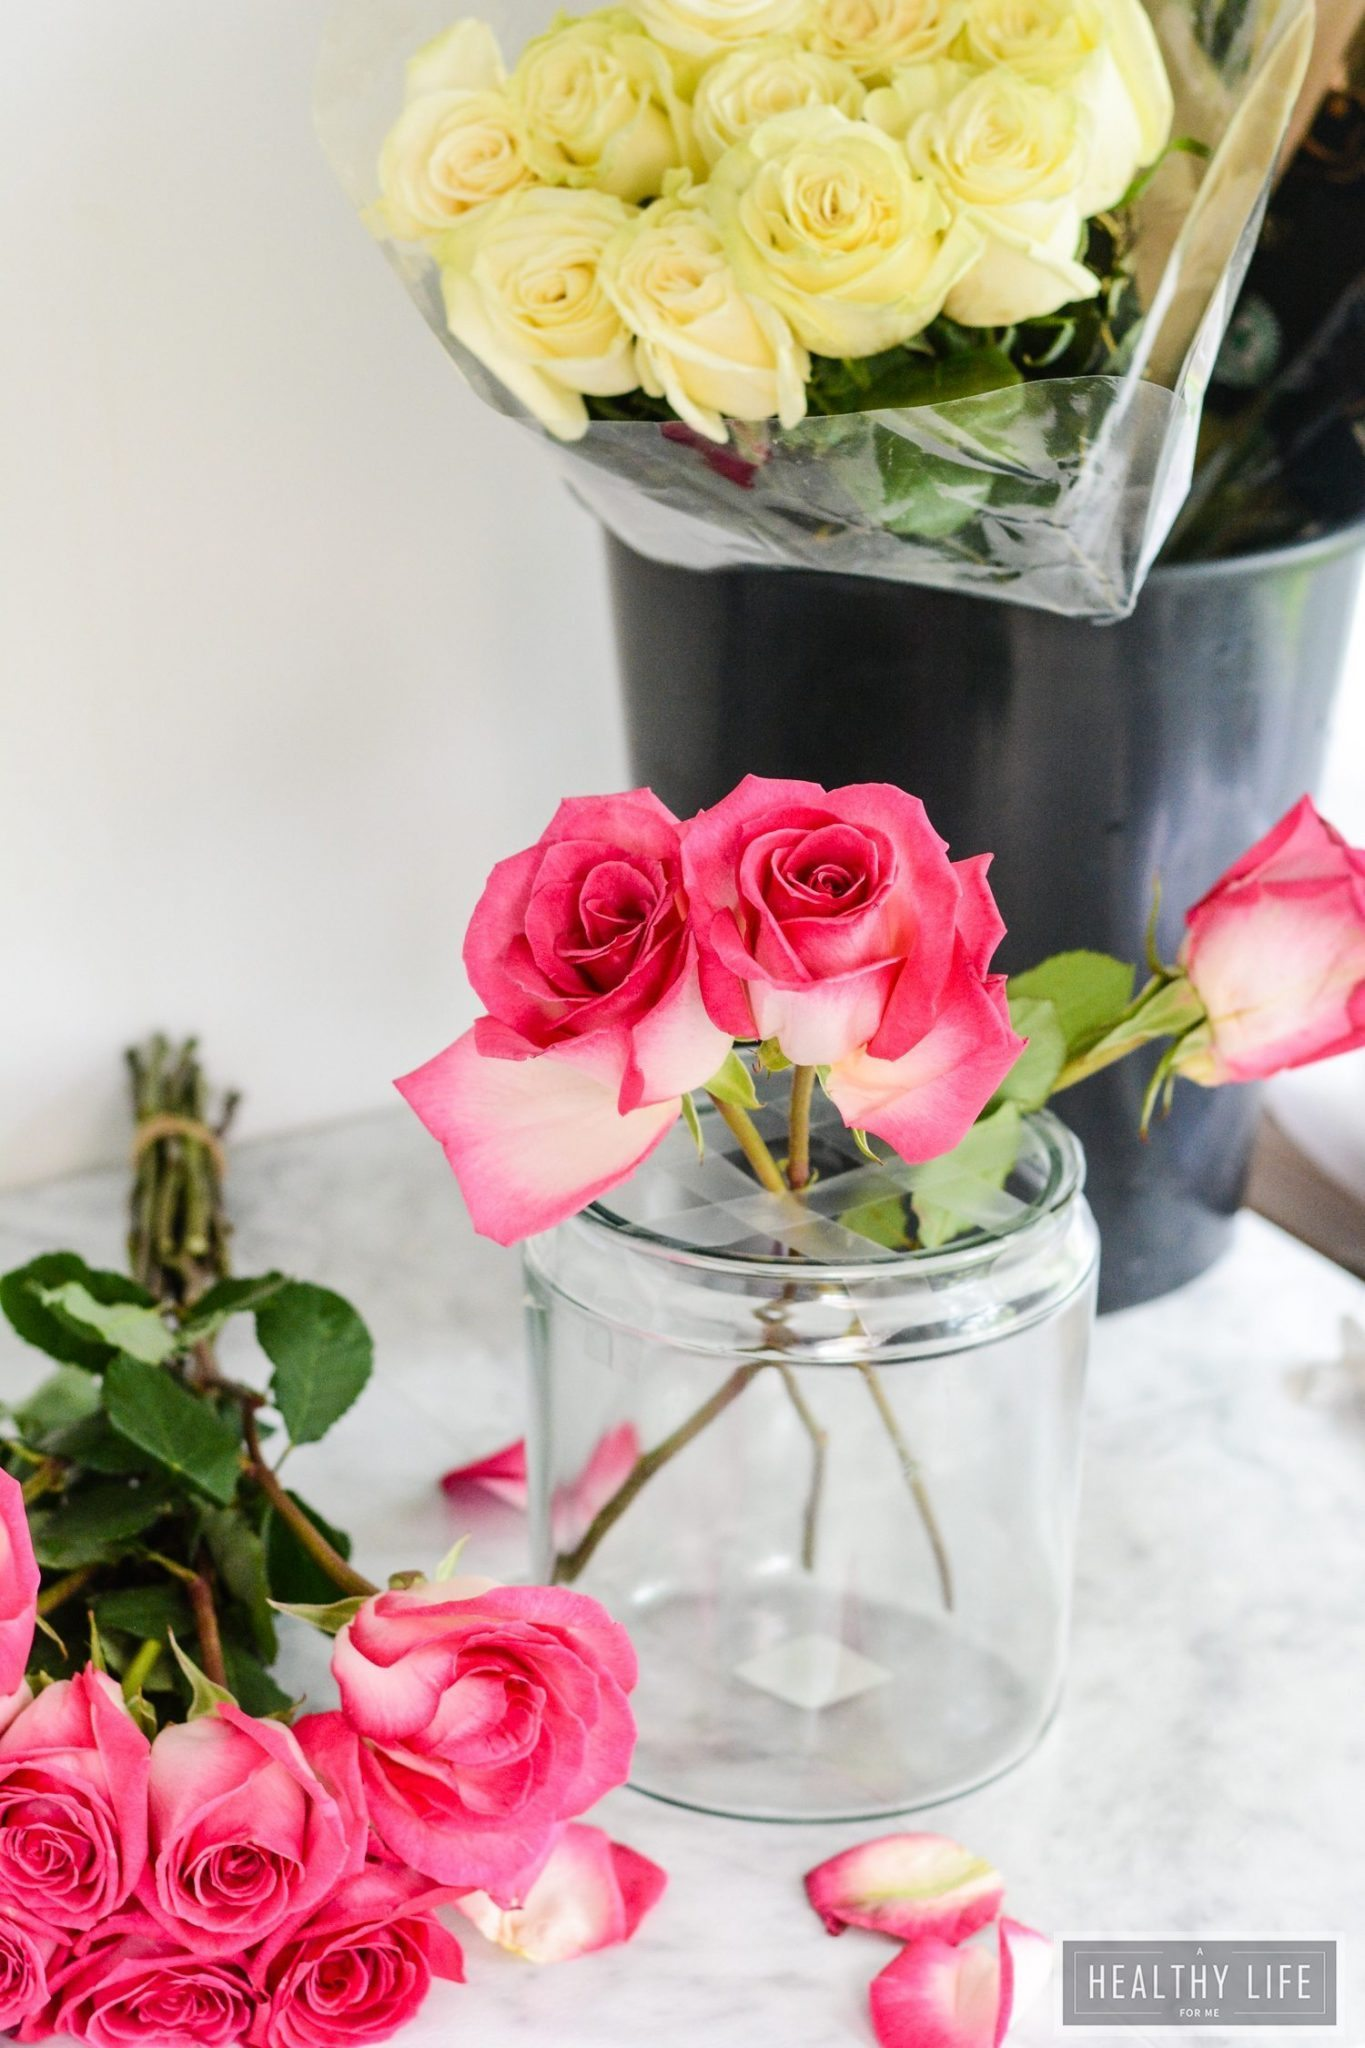 Diy rose flower centerpiece a healthy life for me